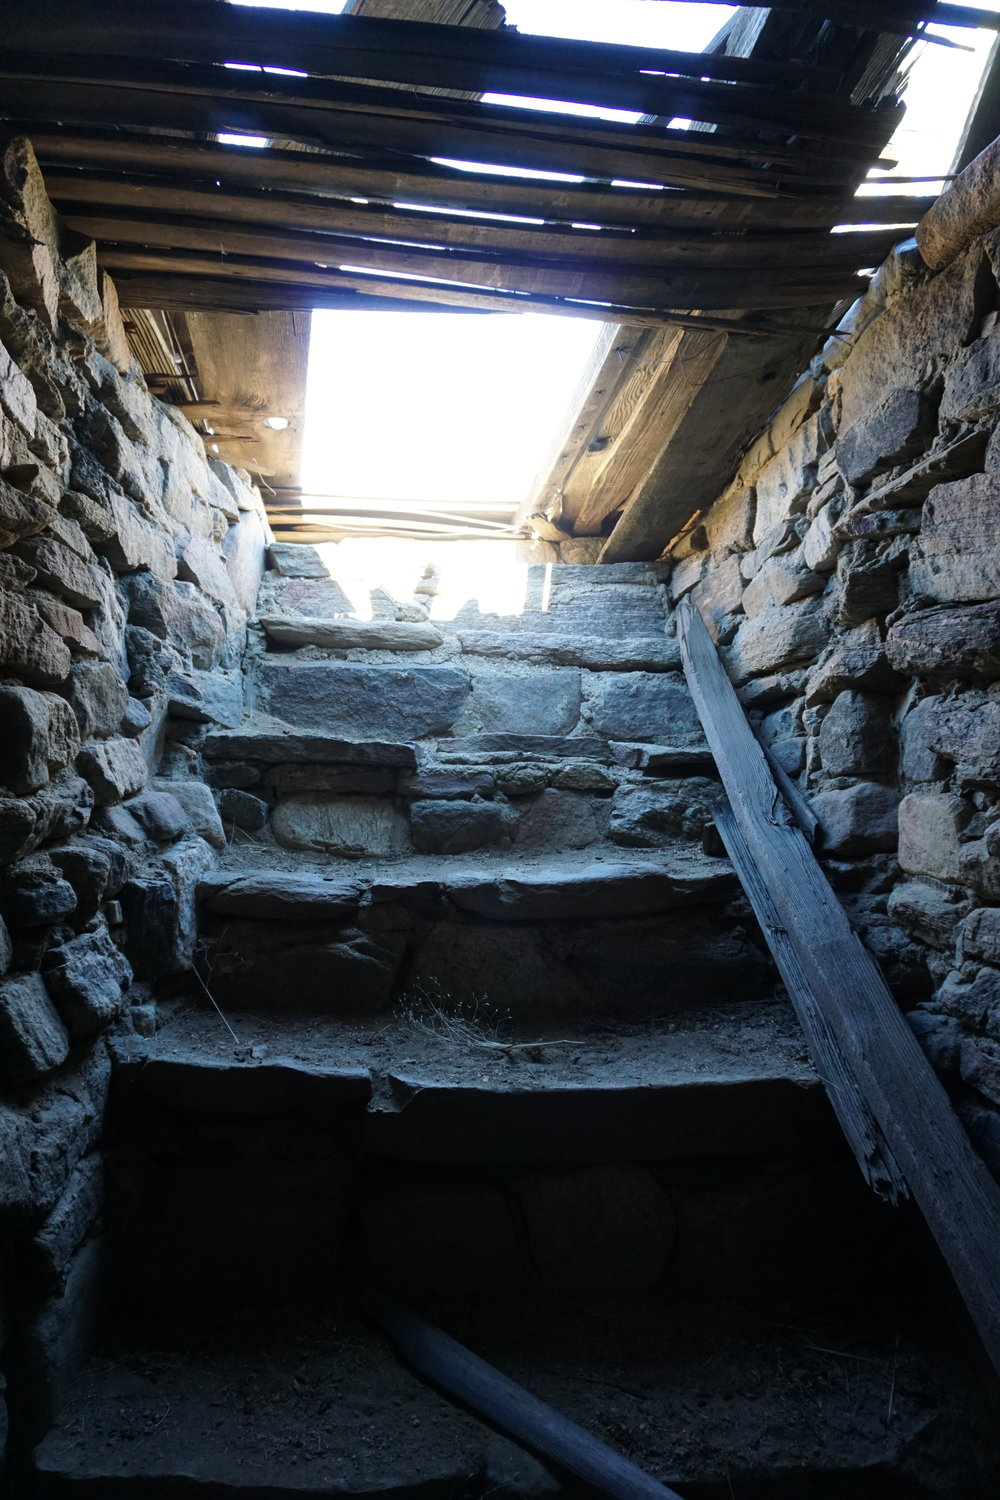 The homestead also has a basement that can be explored cautiously and carefully.